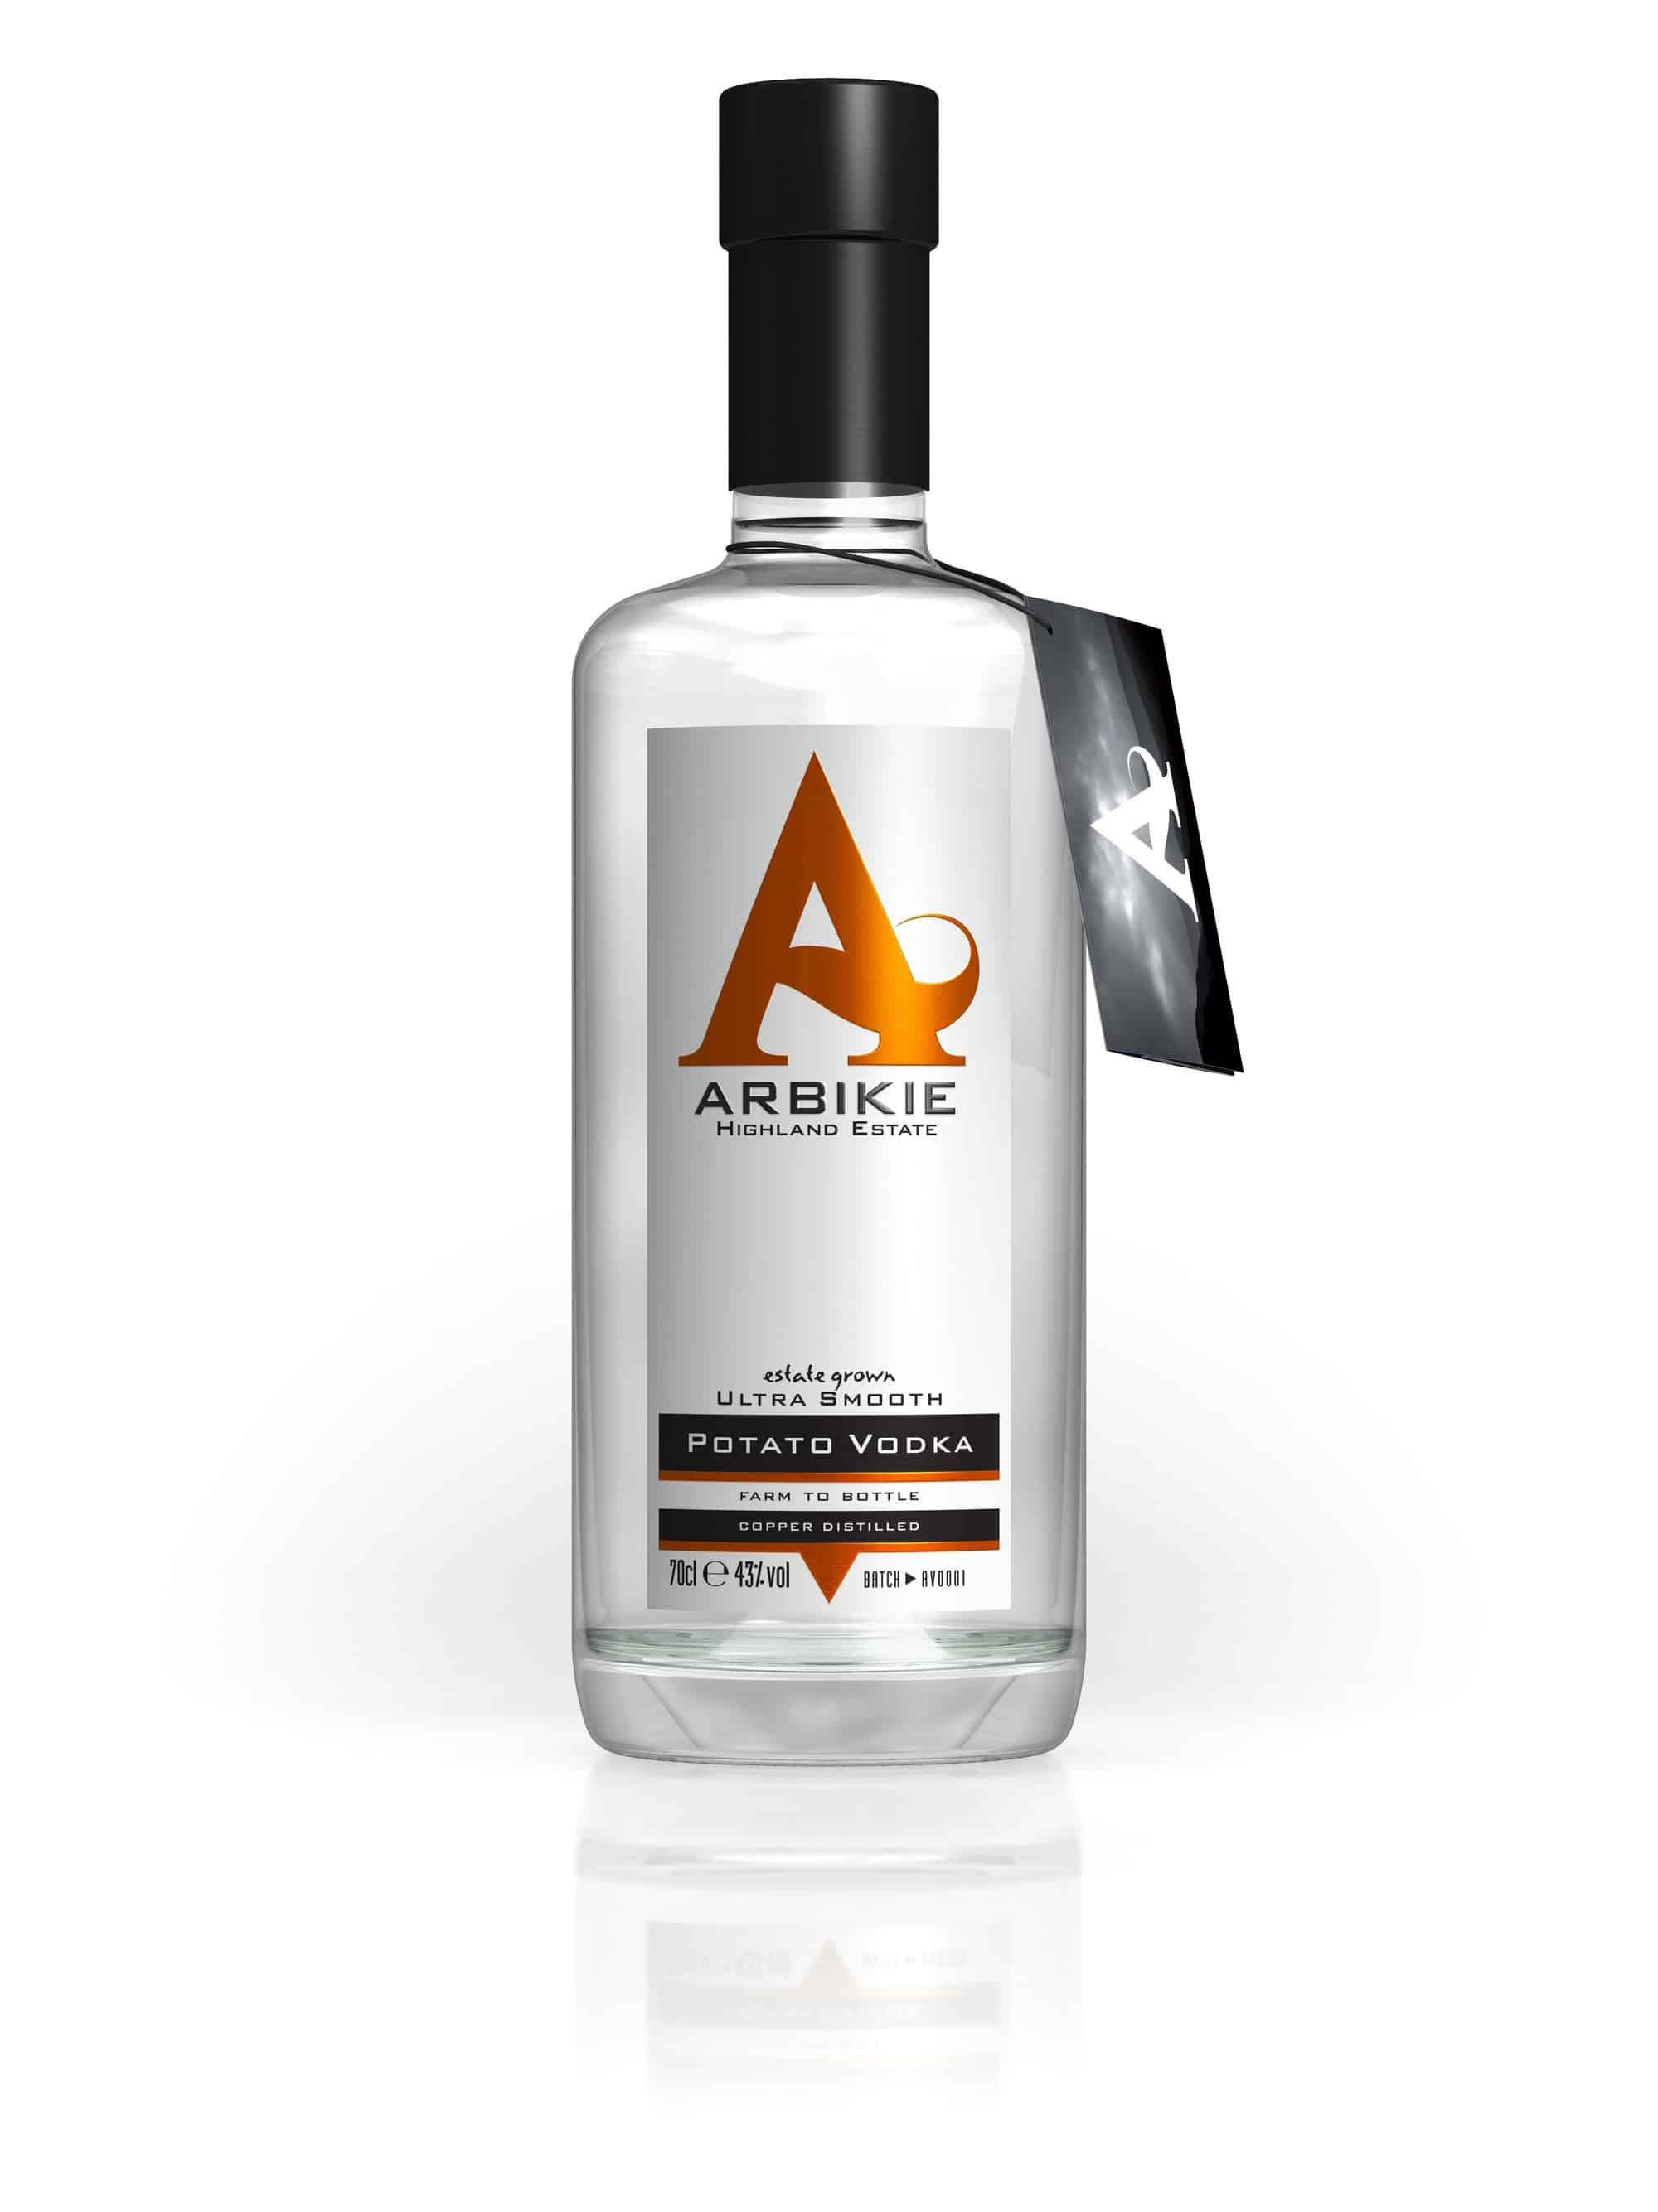 Arbikie bottle227239